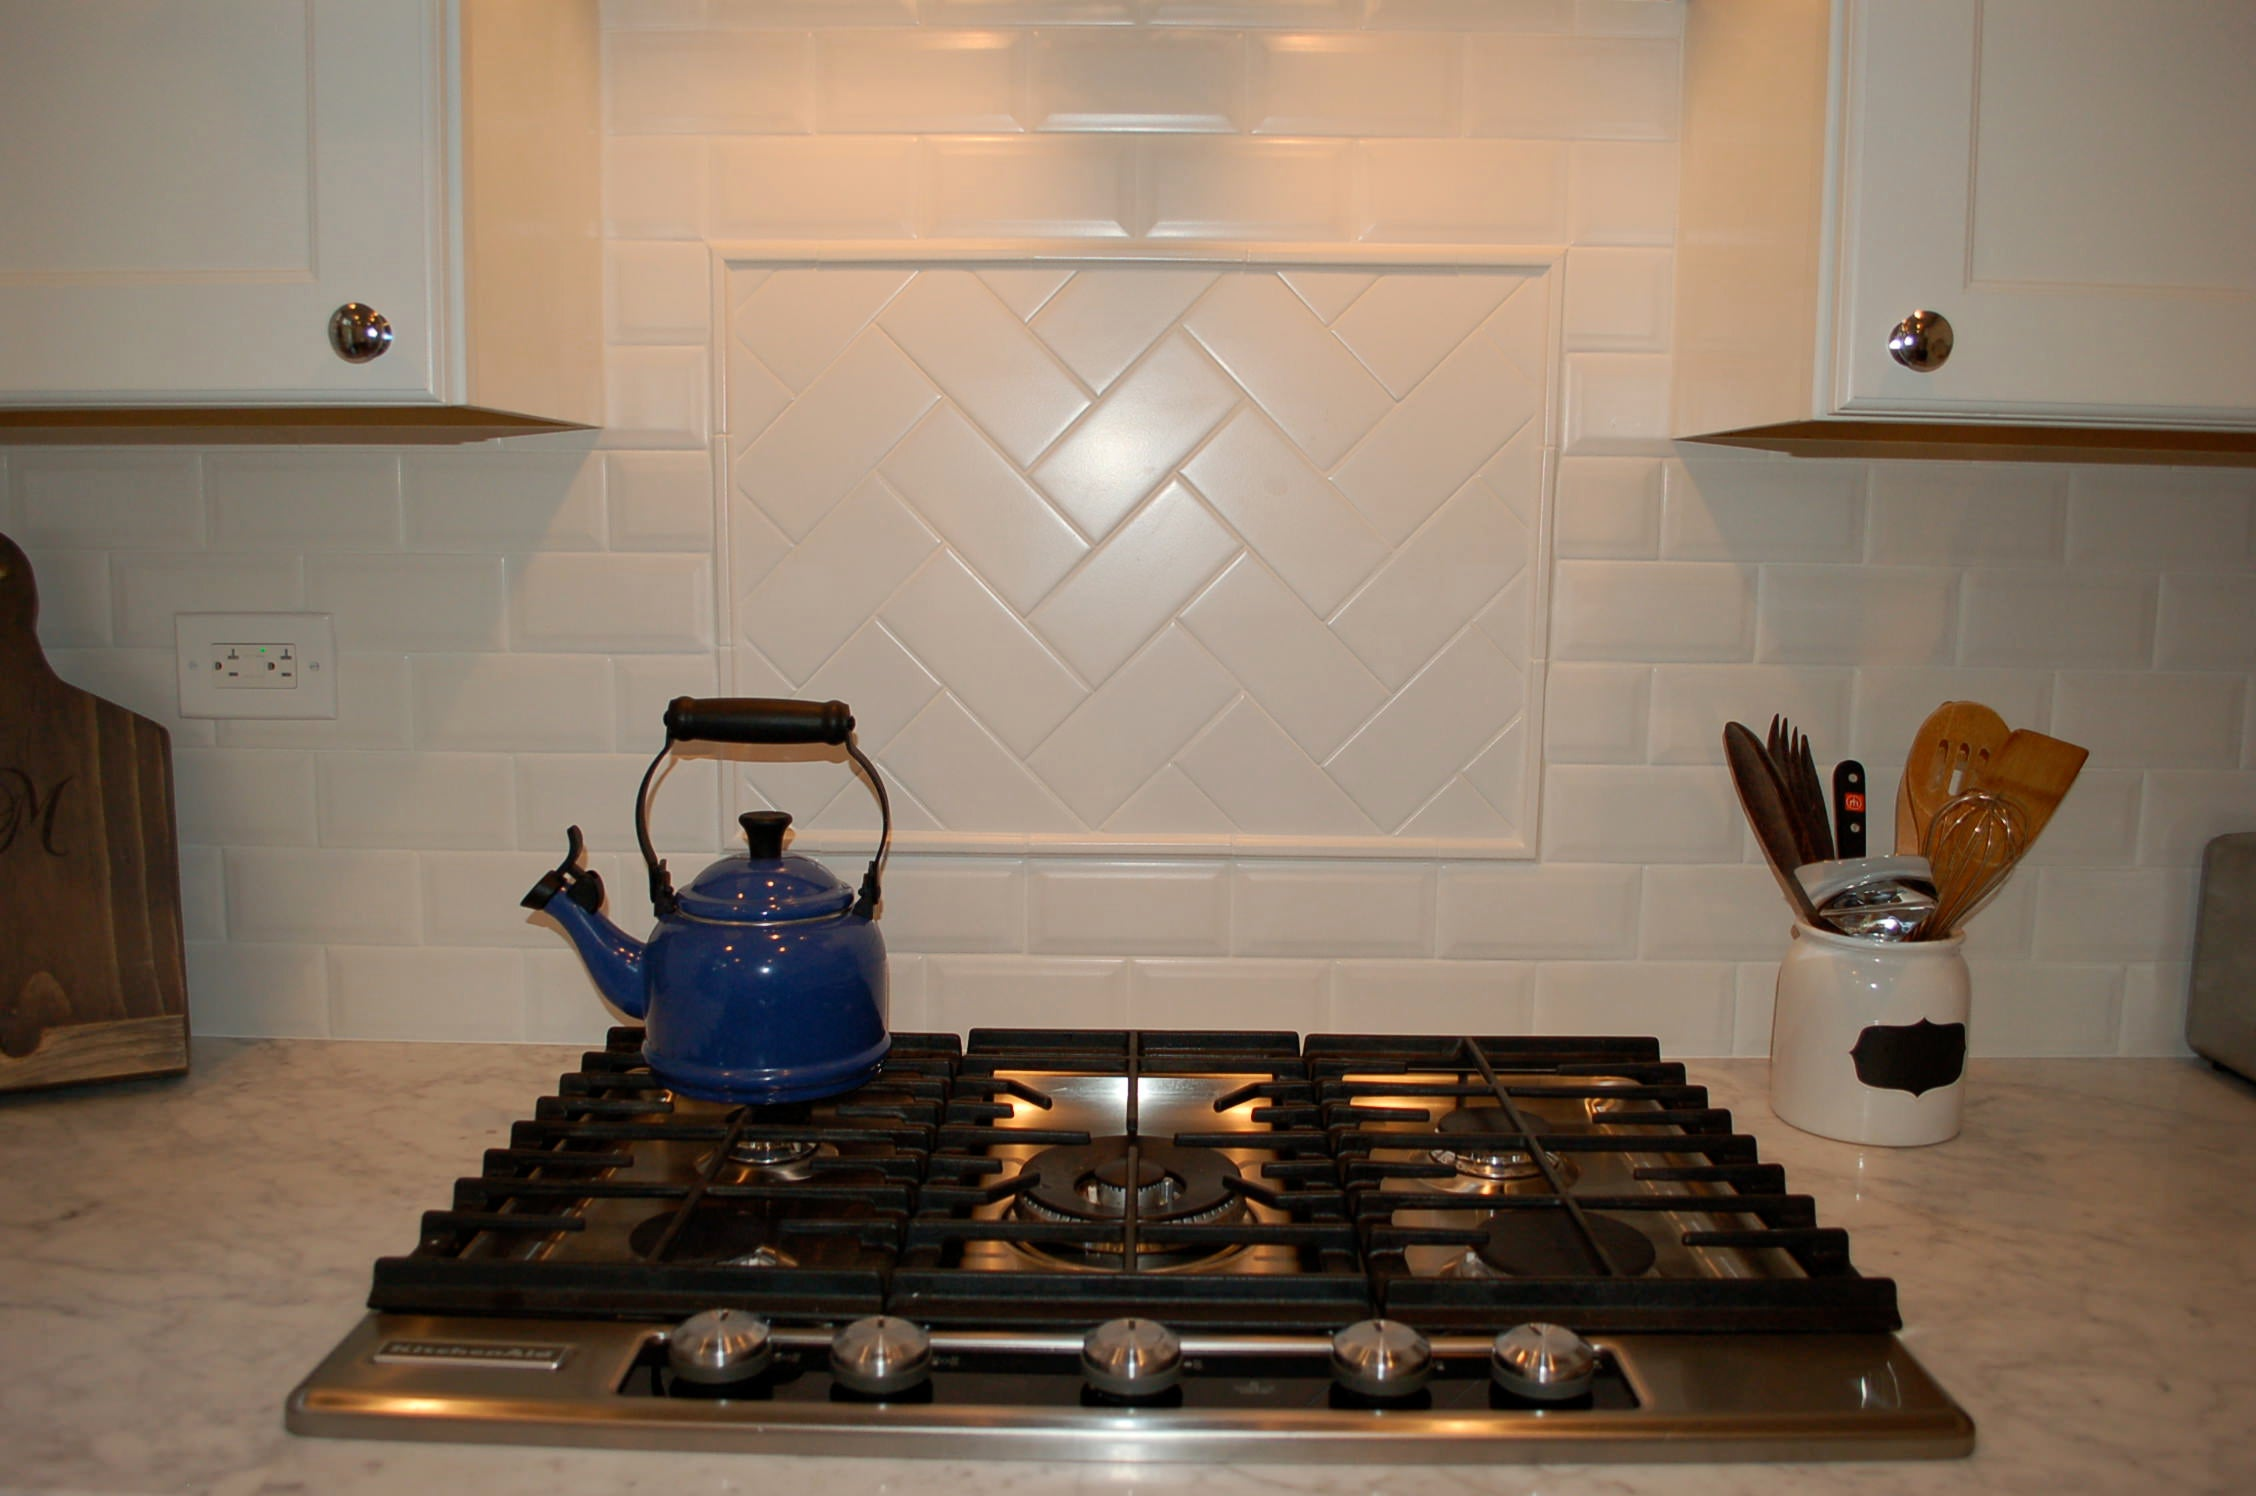 herringbone tile, white kitchen tile, subway tile, ann sacks, wooden hood